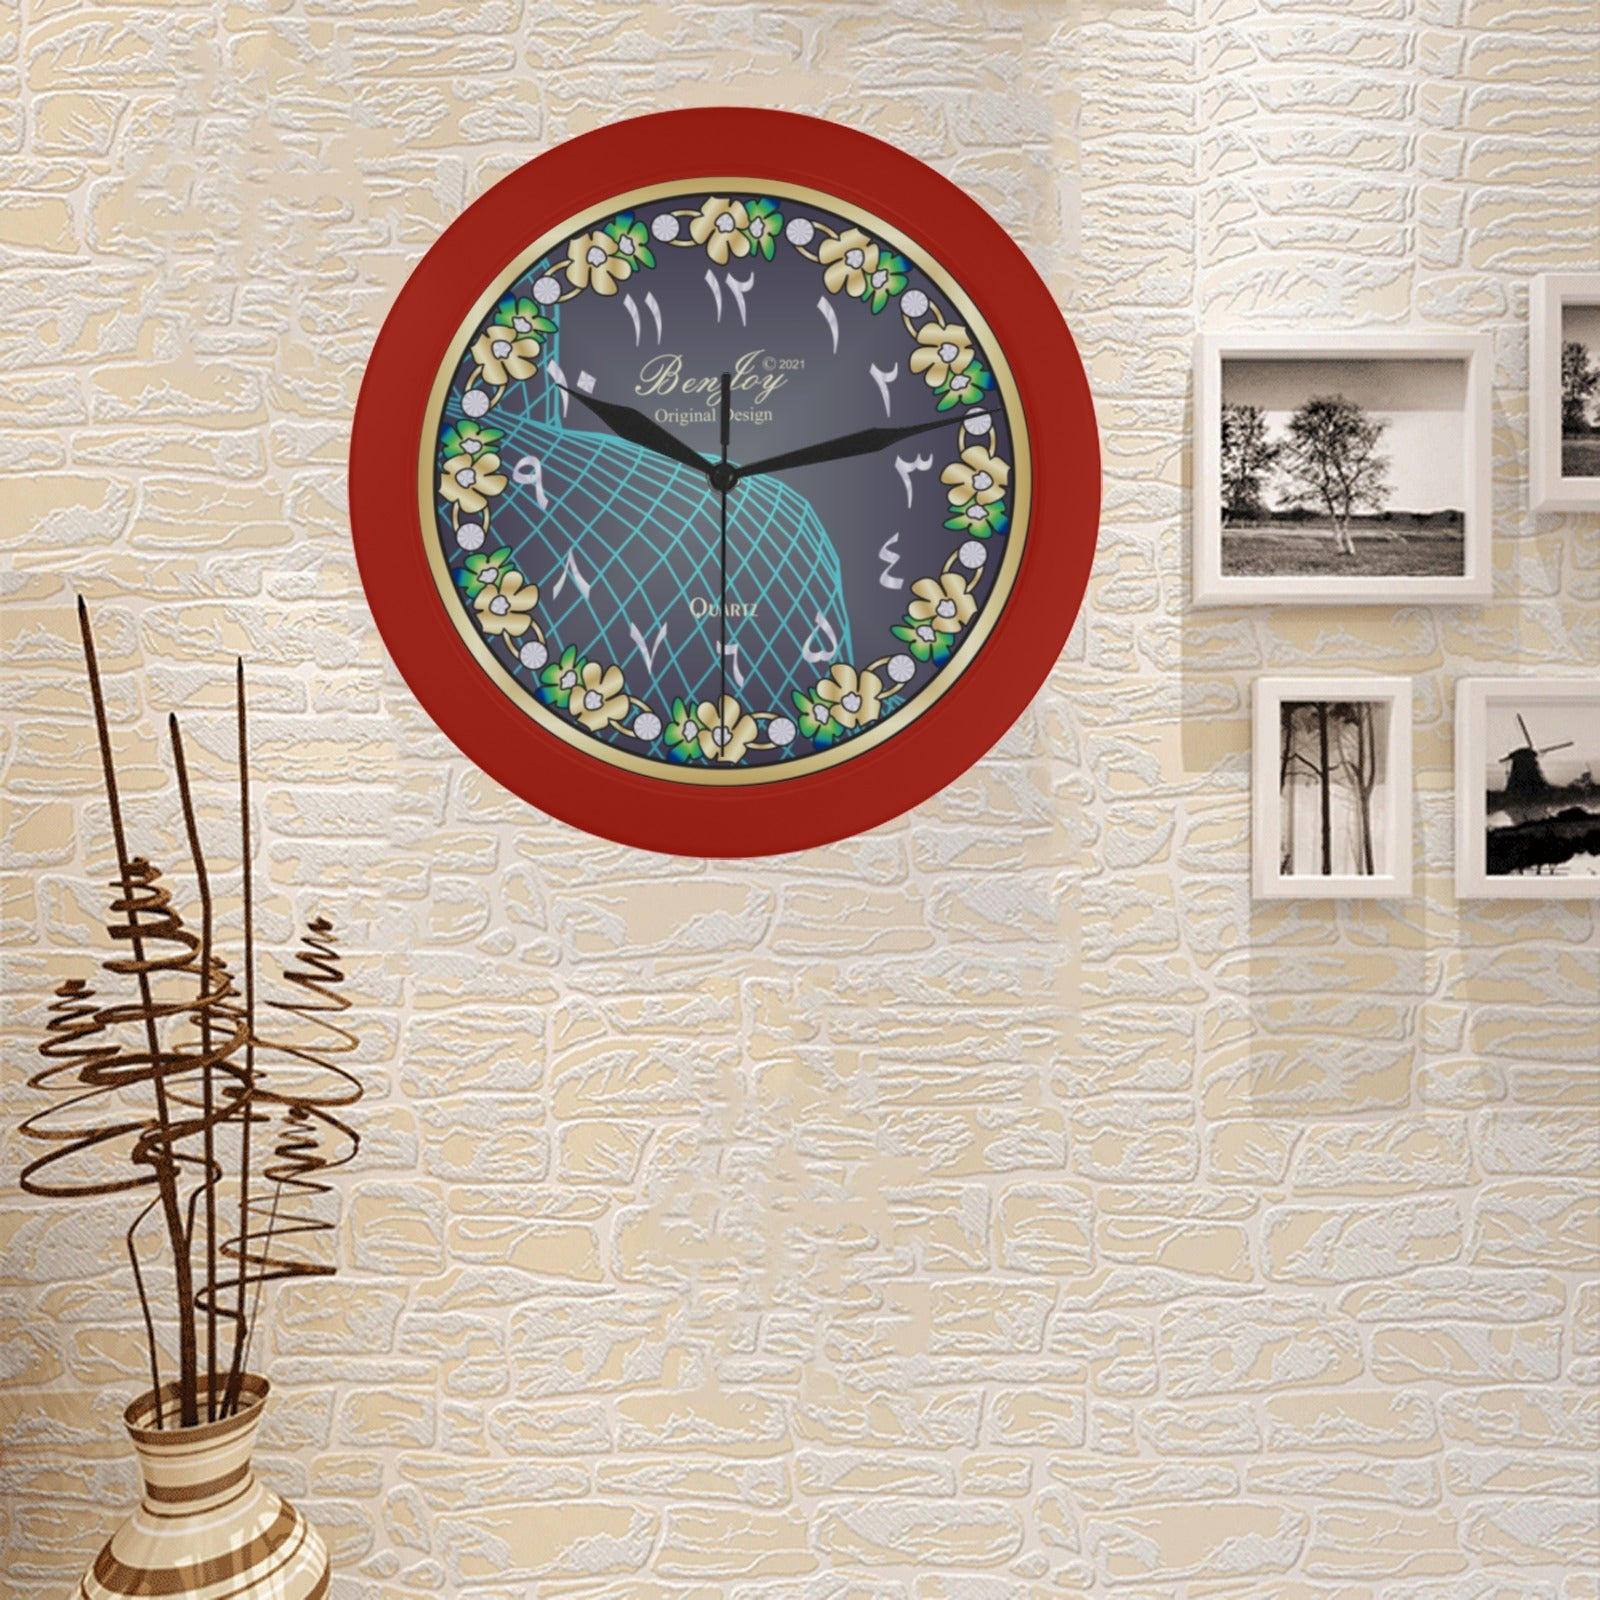 Arabic Wall Clock Design By BenJoy Boys Celebrating Elegant Black Wall Clock